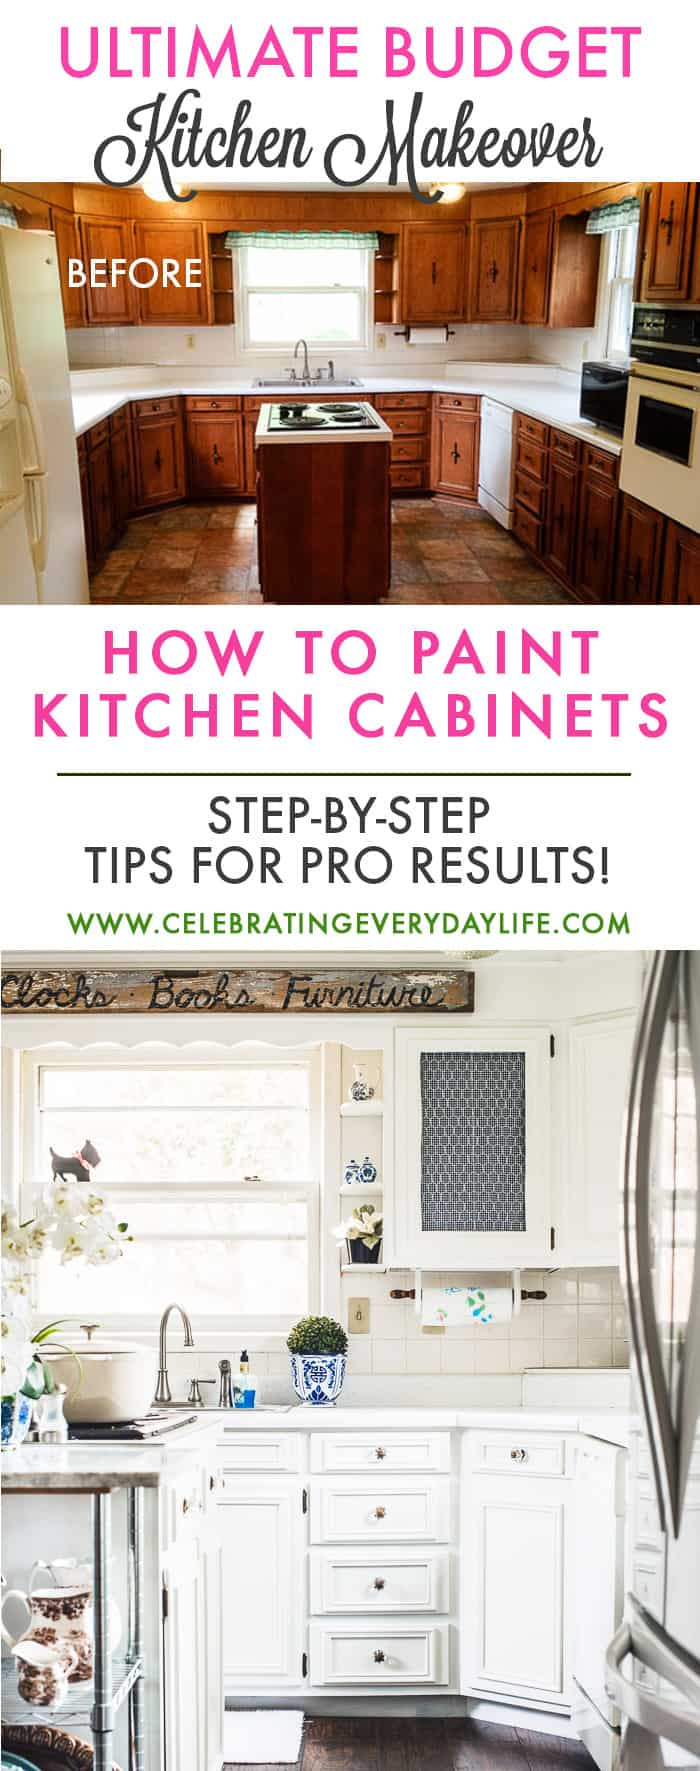 How To Turn Your Kitchen Into A Dream Kitchen With Paint! A Step By